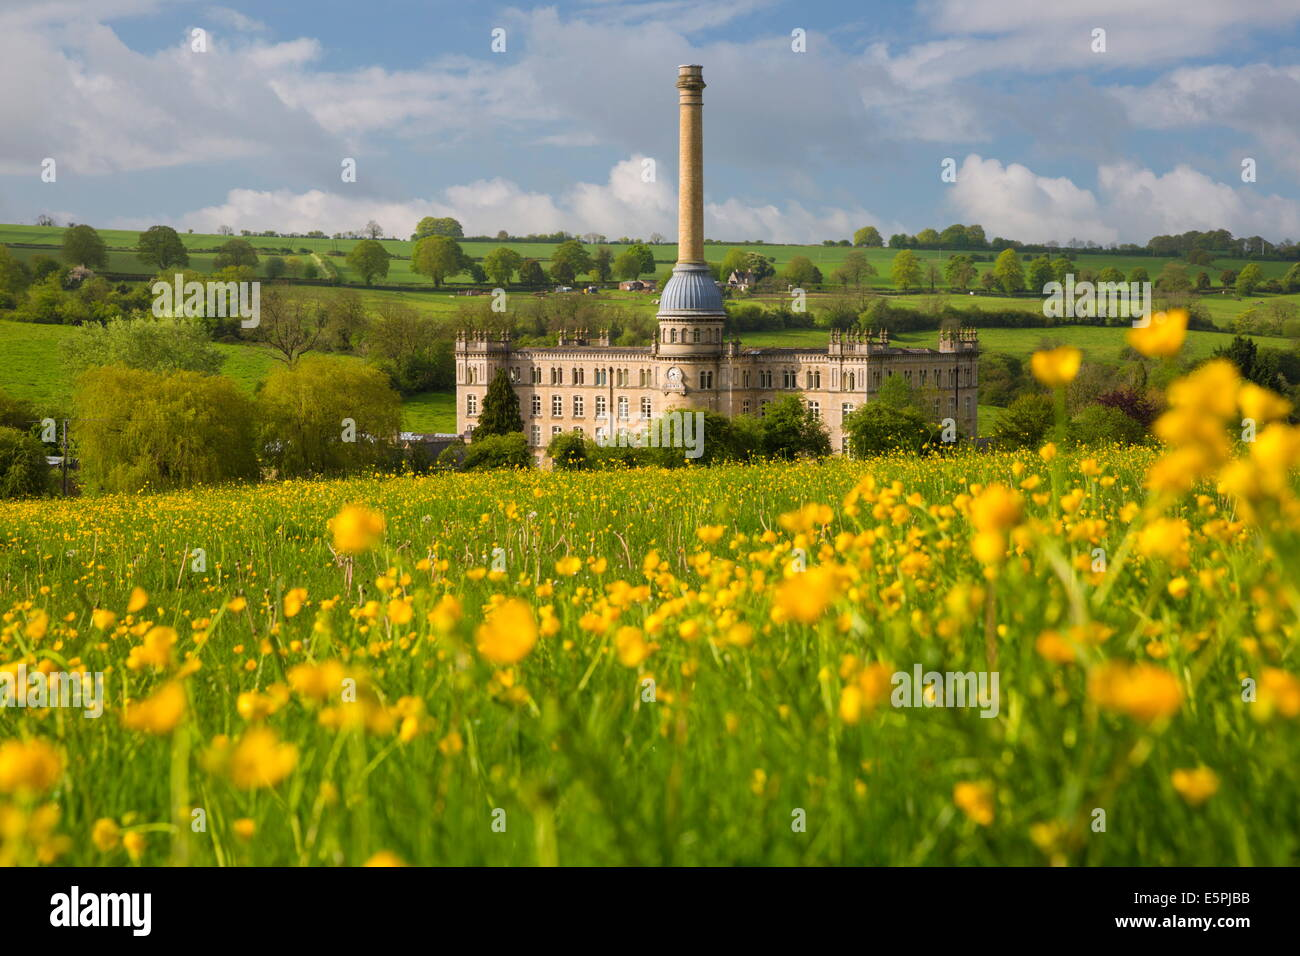 Bliss Mill with buttercups, Chipping Norton, Cotswolds, Oxfordshire, England, United Kingdom, Europe - Stock Image